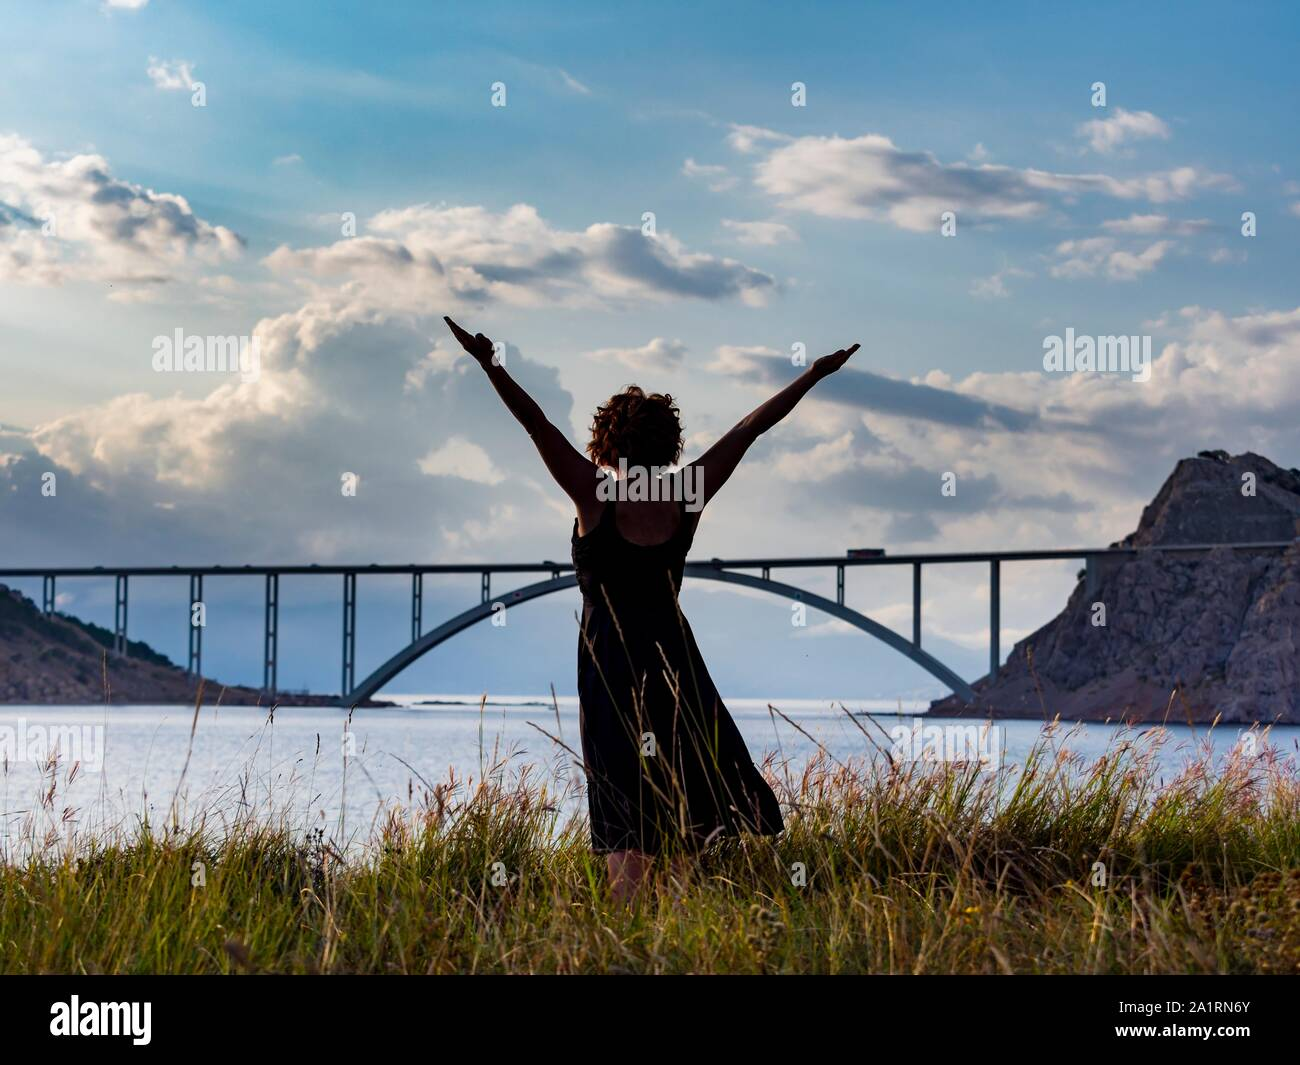 Hand spread spreading away and up upwards in late afternoon before distant bridge and numerous White clouds silhouette nobody Stock Photo